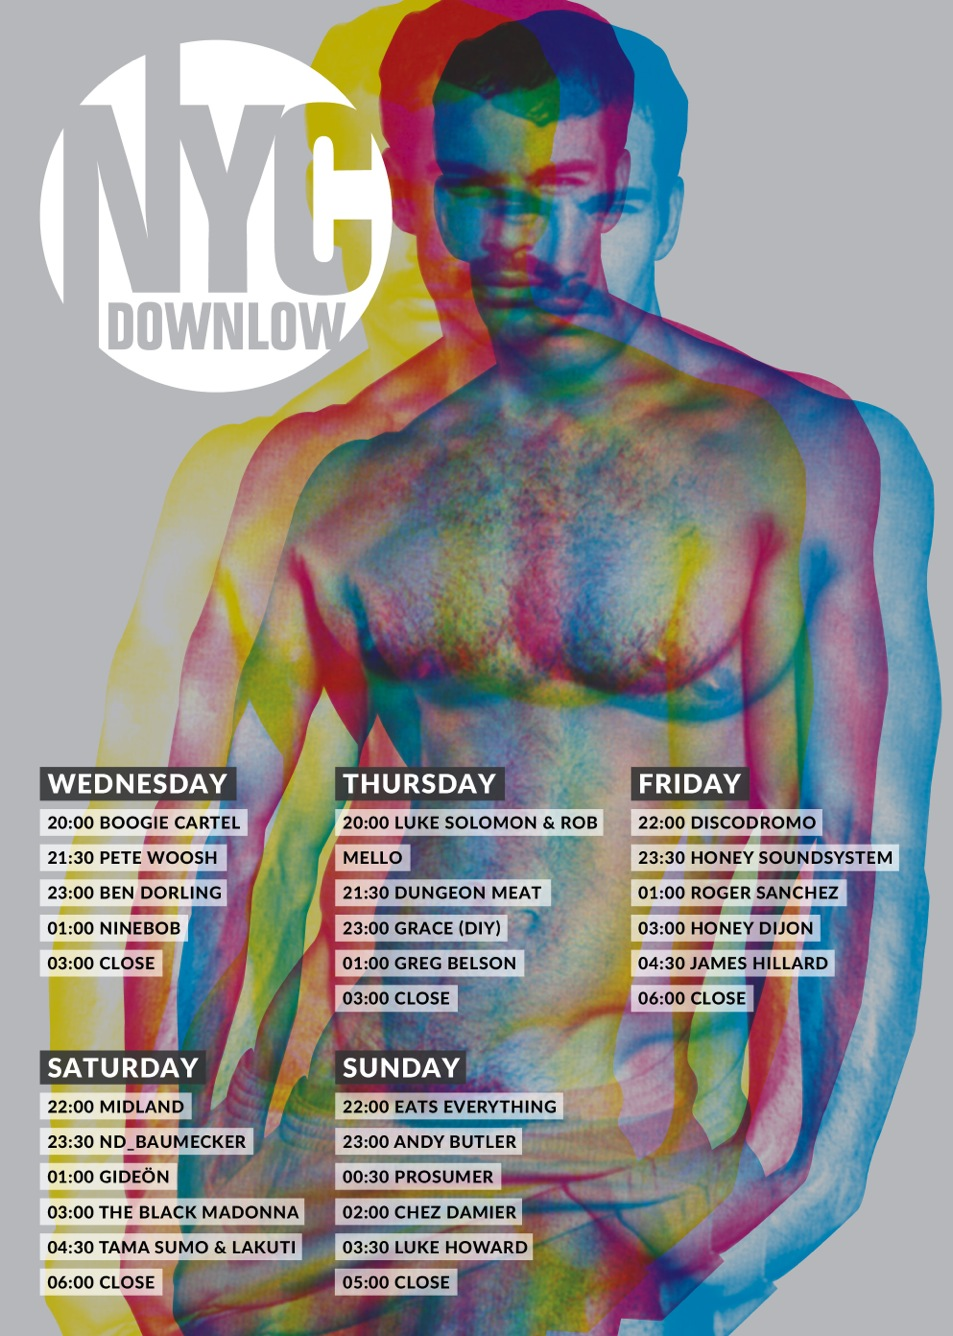 NYC Downlow 2016 full_953x1336px-1